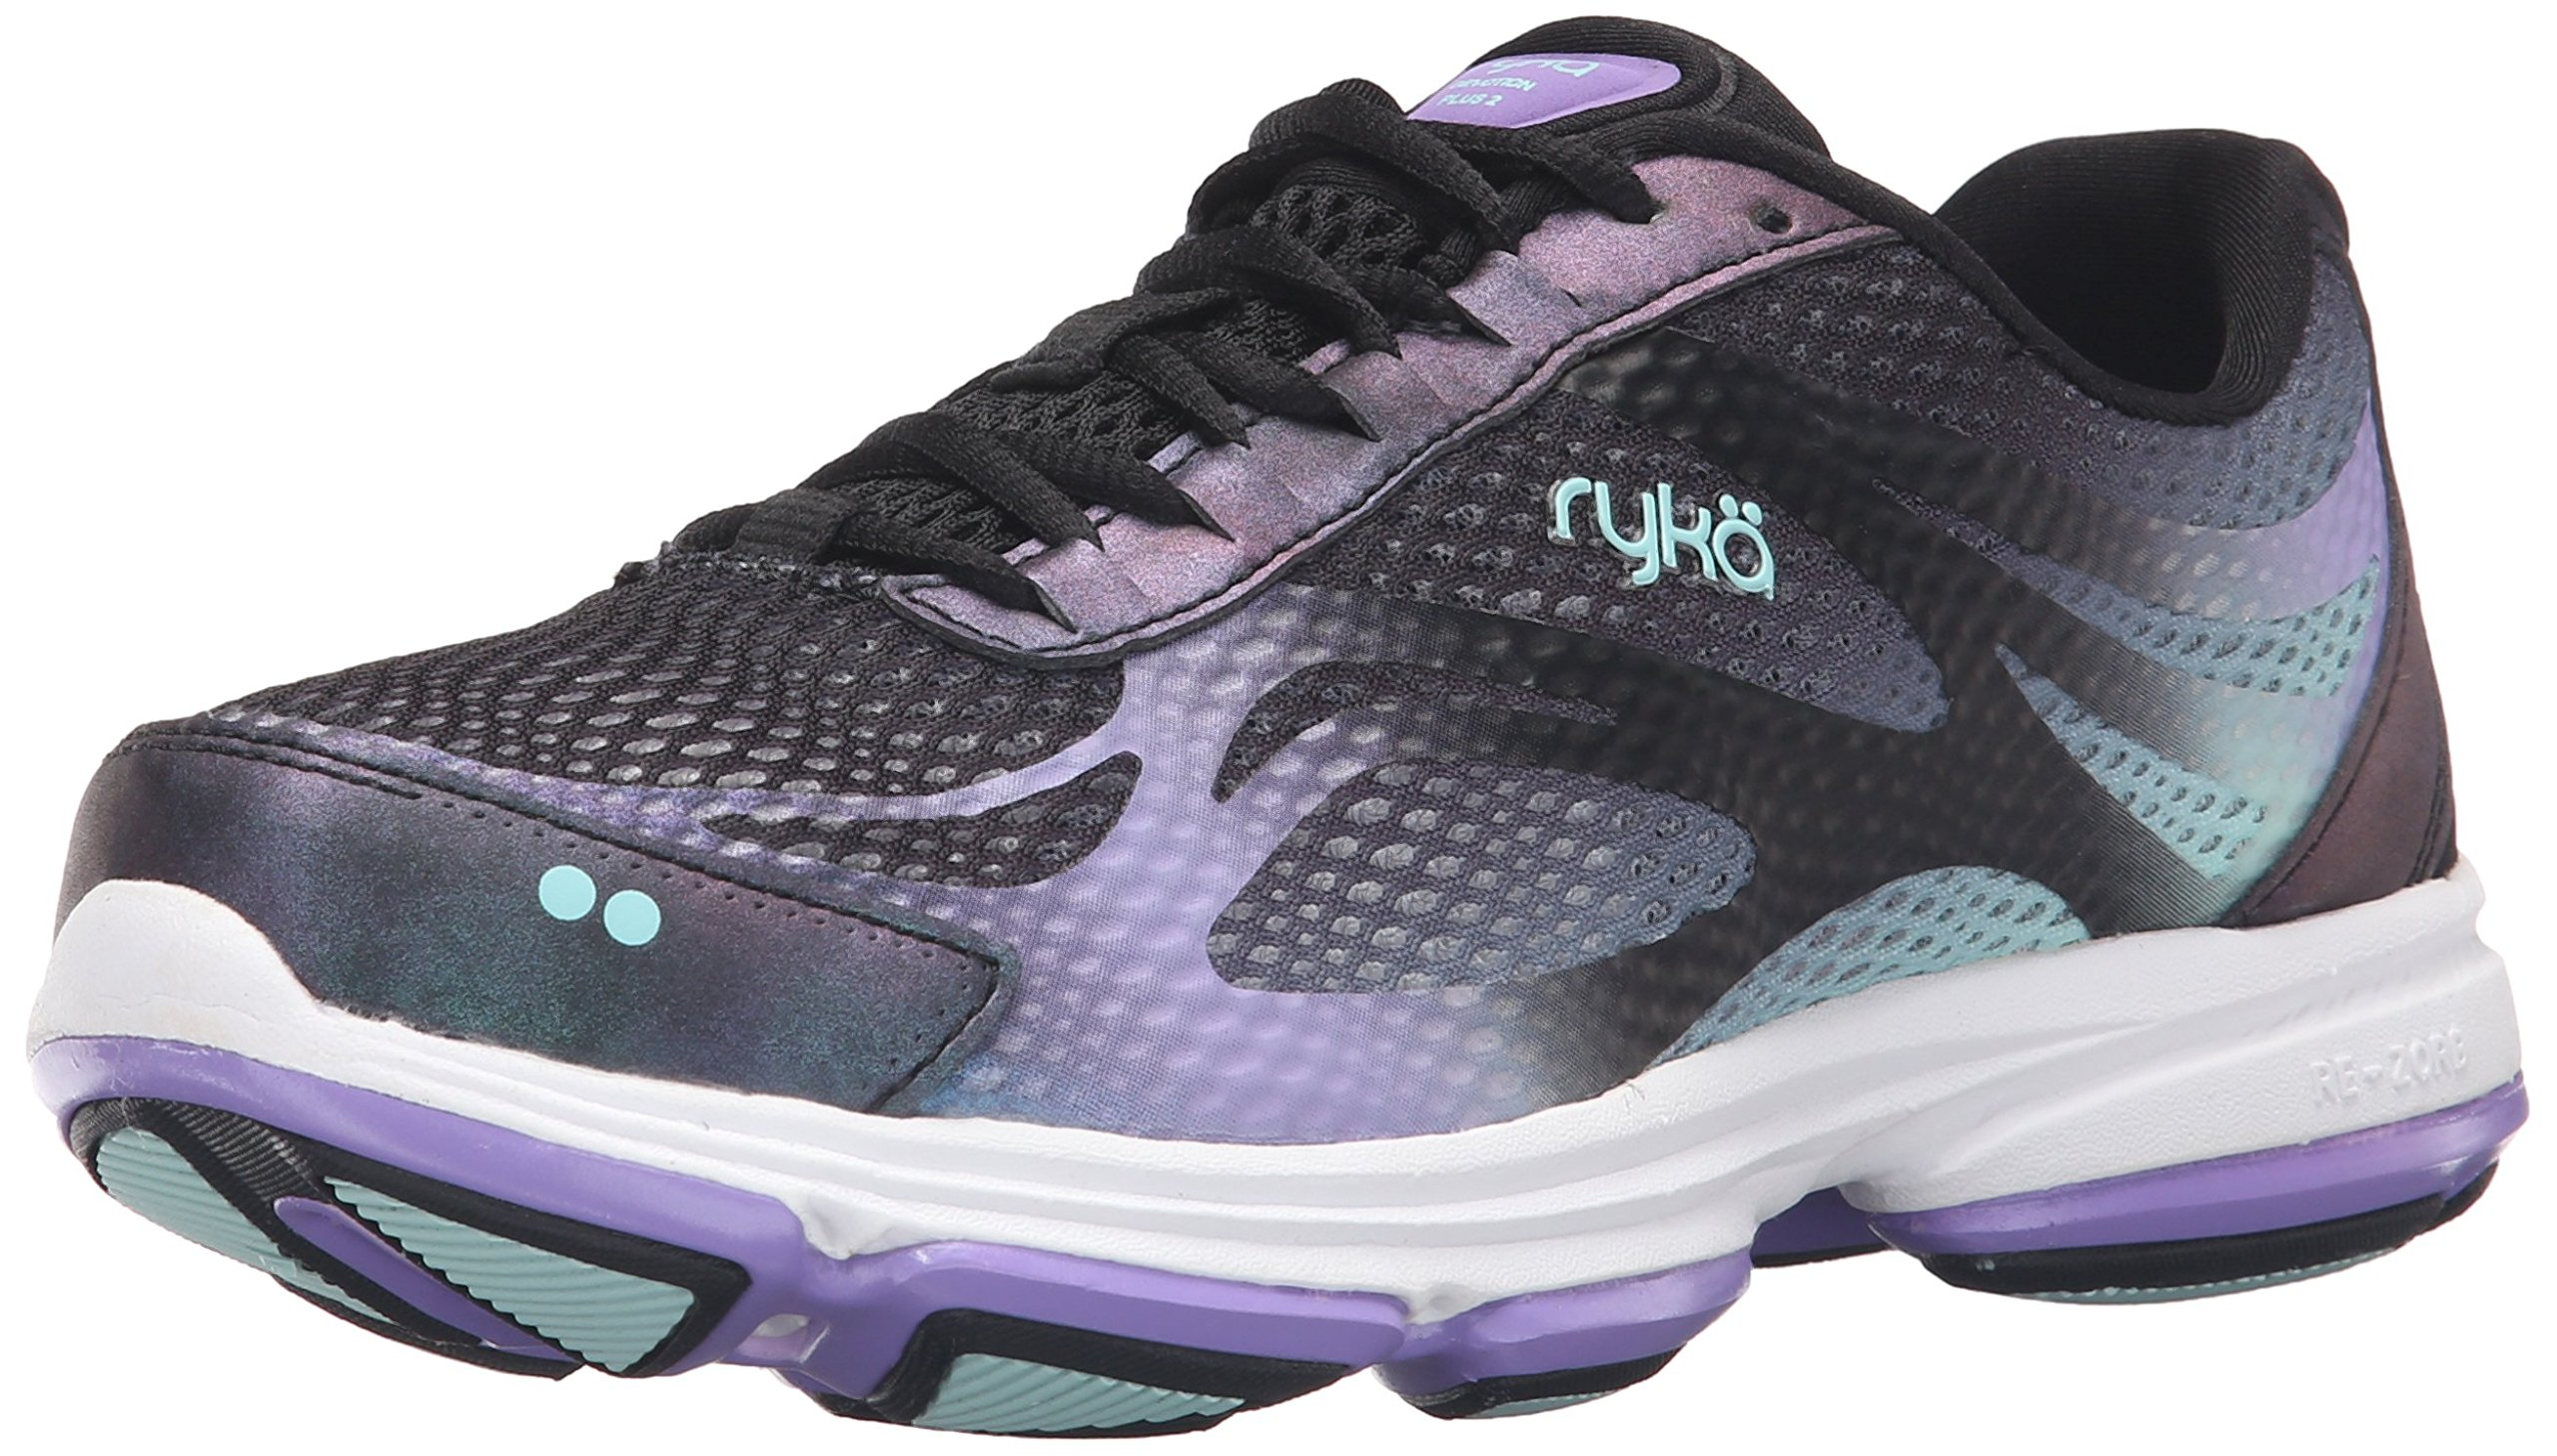 Ryka Women's Devo Plus 2 Walking Shoe, Black/Purple, 8 W US